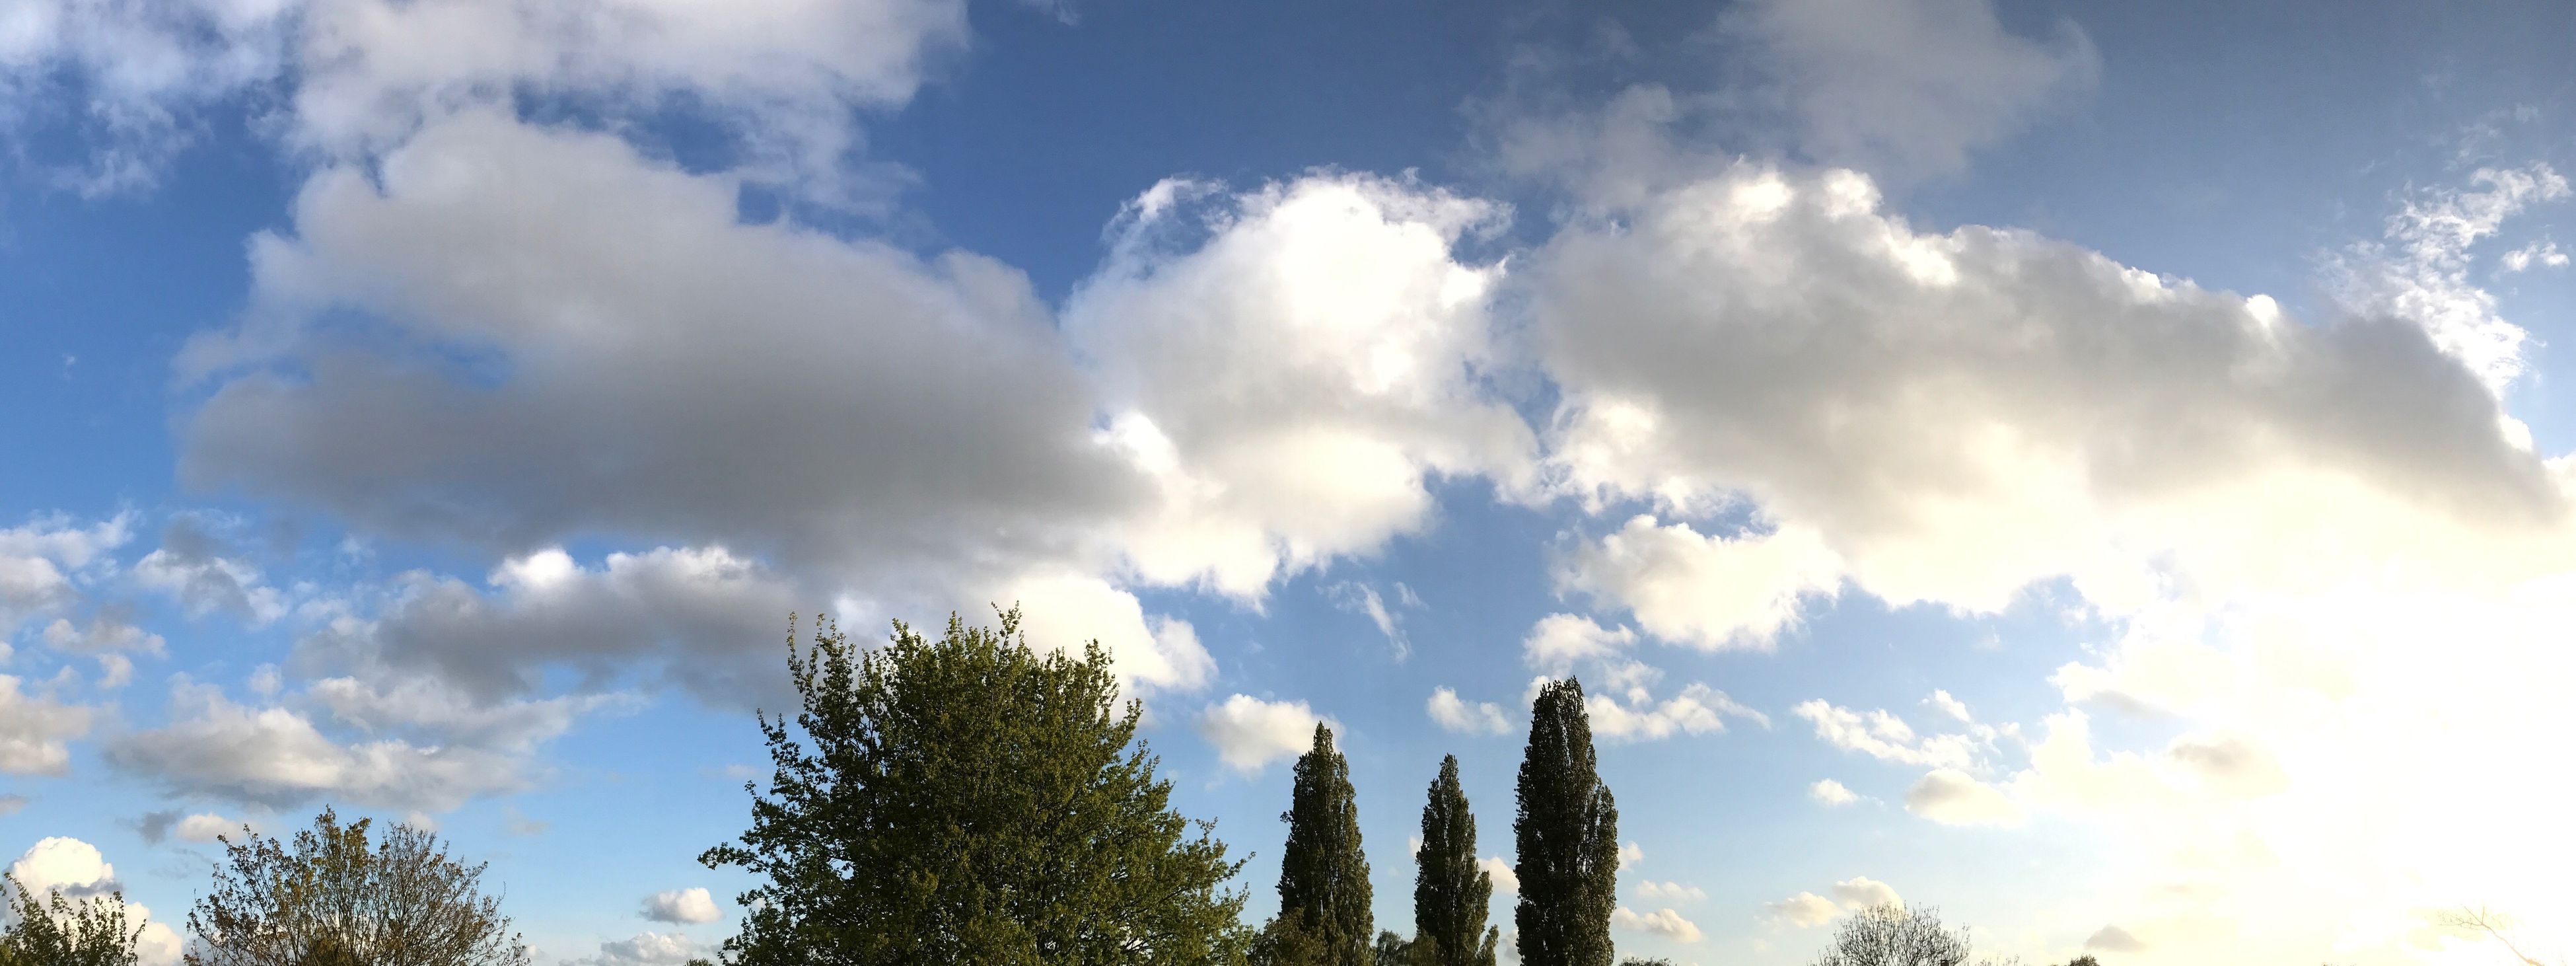 low angle view, cloud - sky, tree, sky, nature, no people, beauty in nature, growth, outdoors, day, treetop